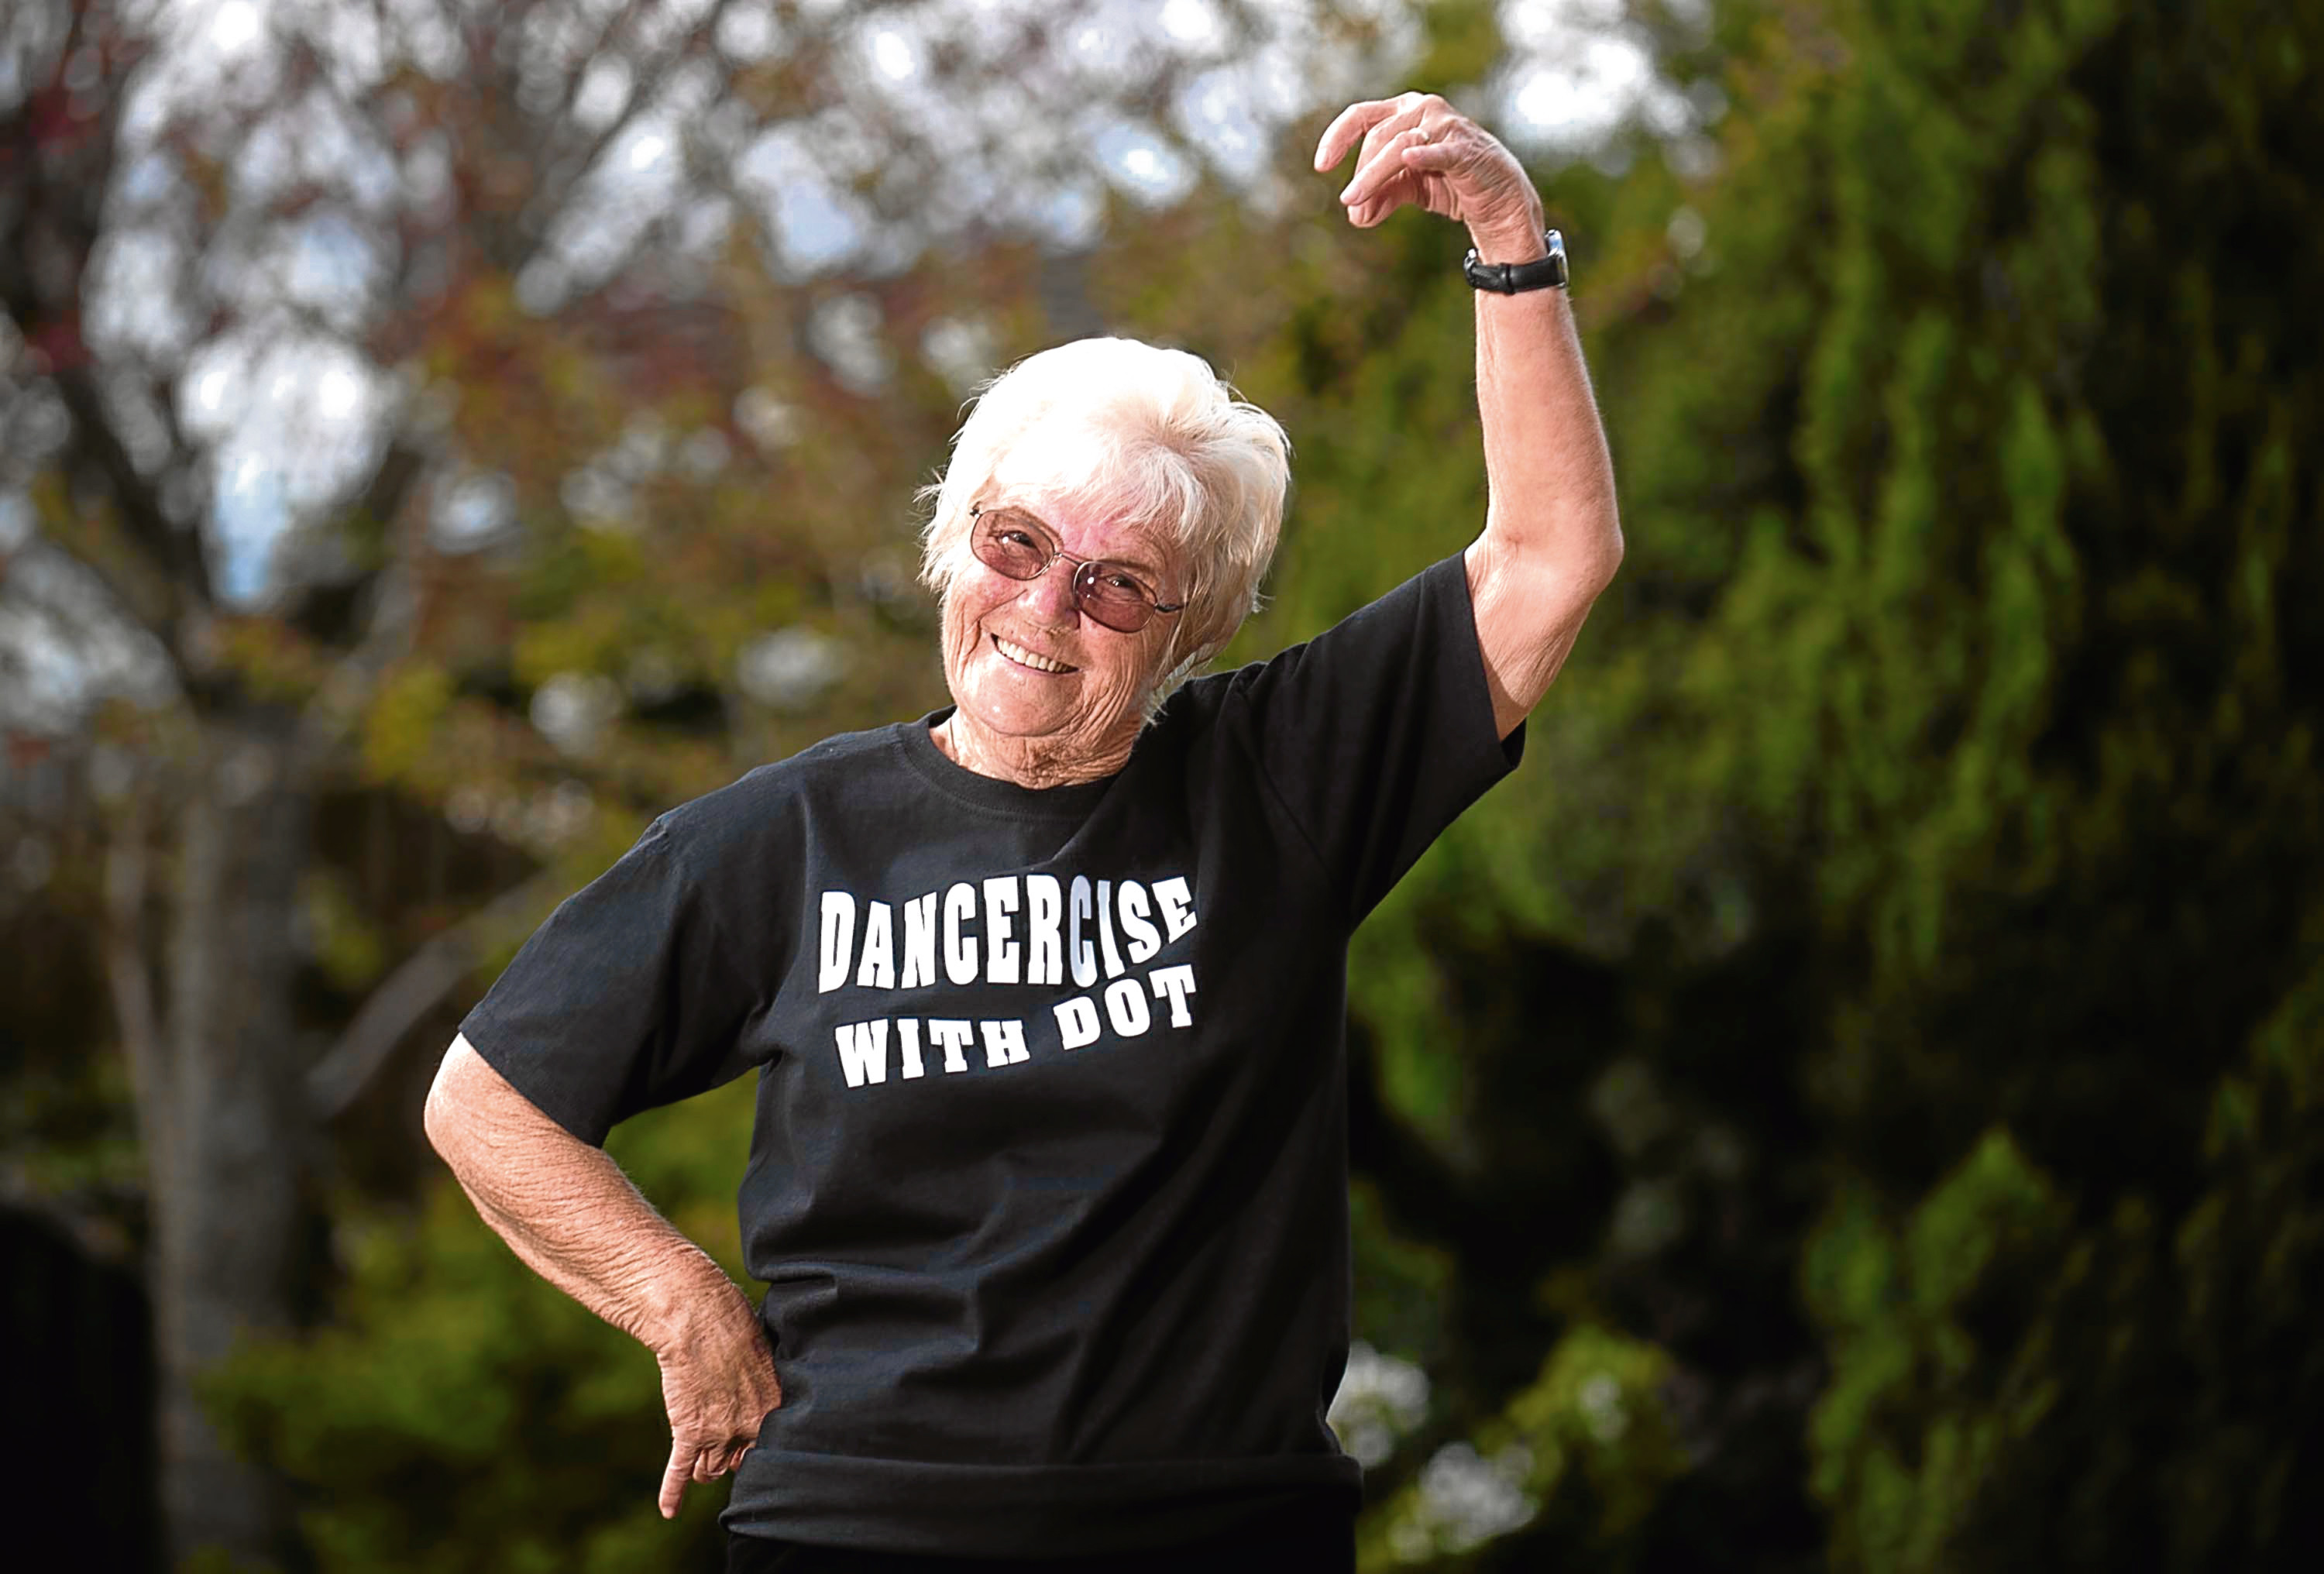 79-year-old Dorothy Bremner has raised £1685 by holding dance and exercise classes